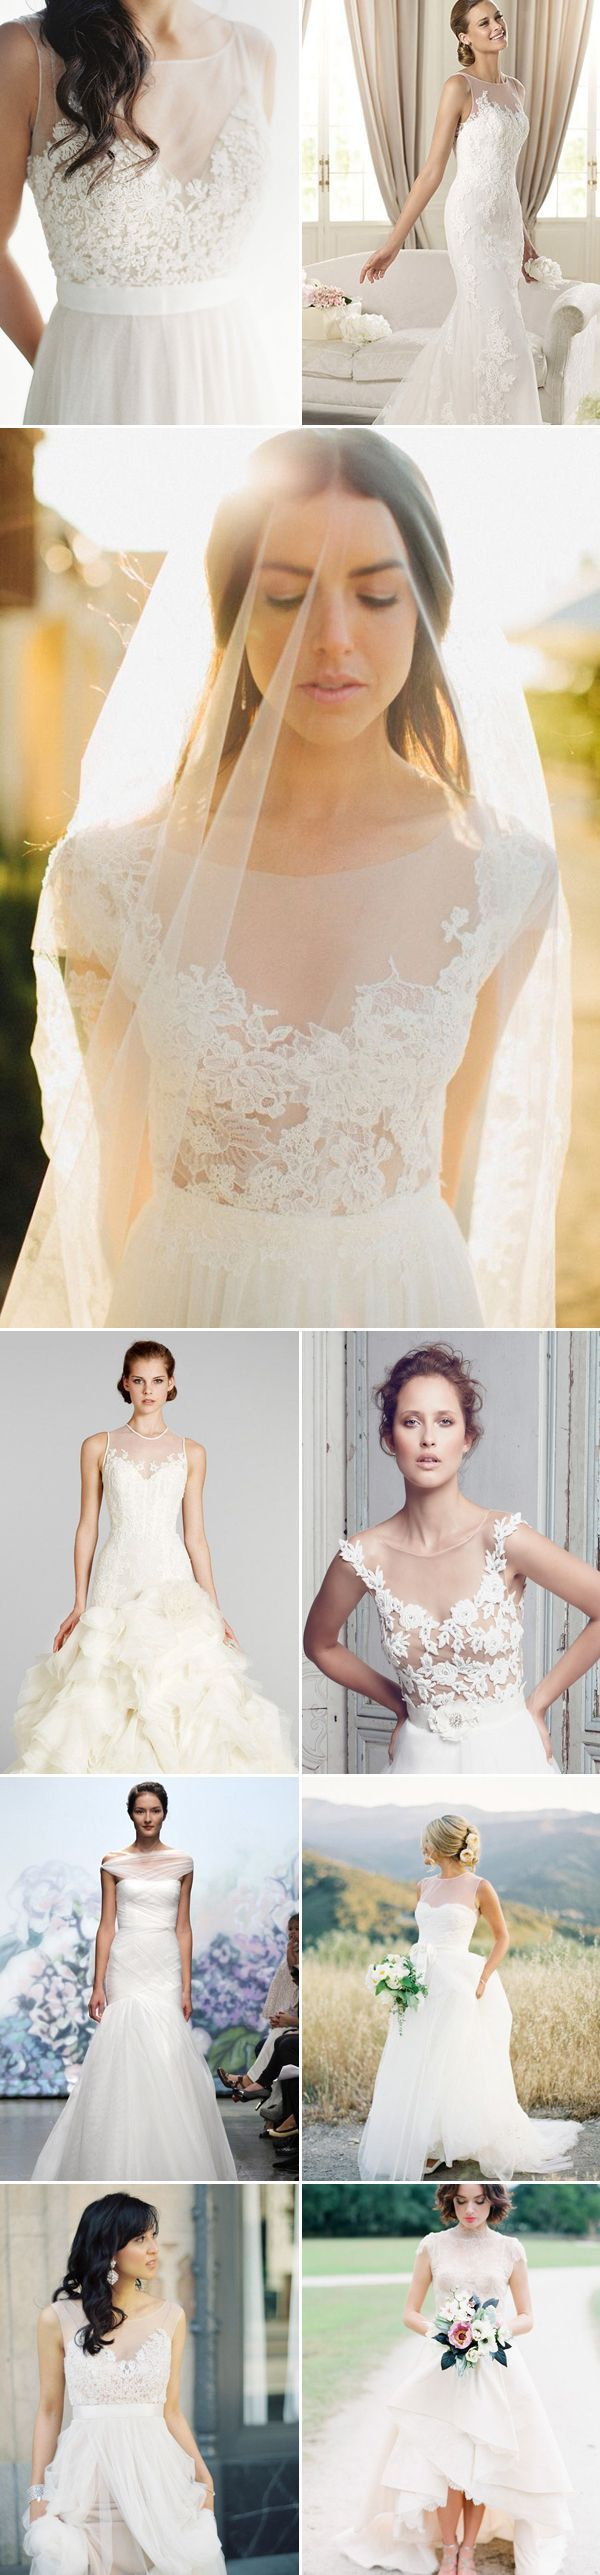 23 Gorgeous Wedding Dresses With Illusion Necklines - clear